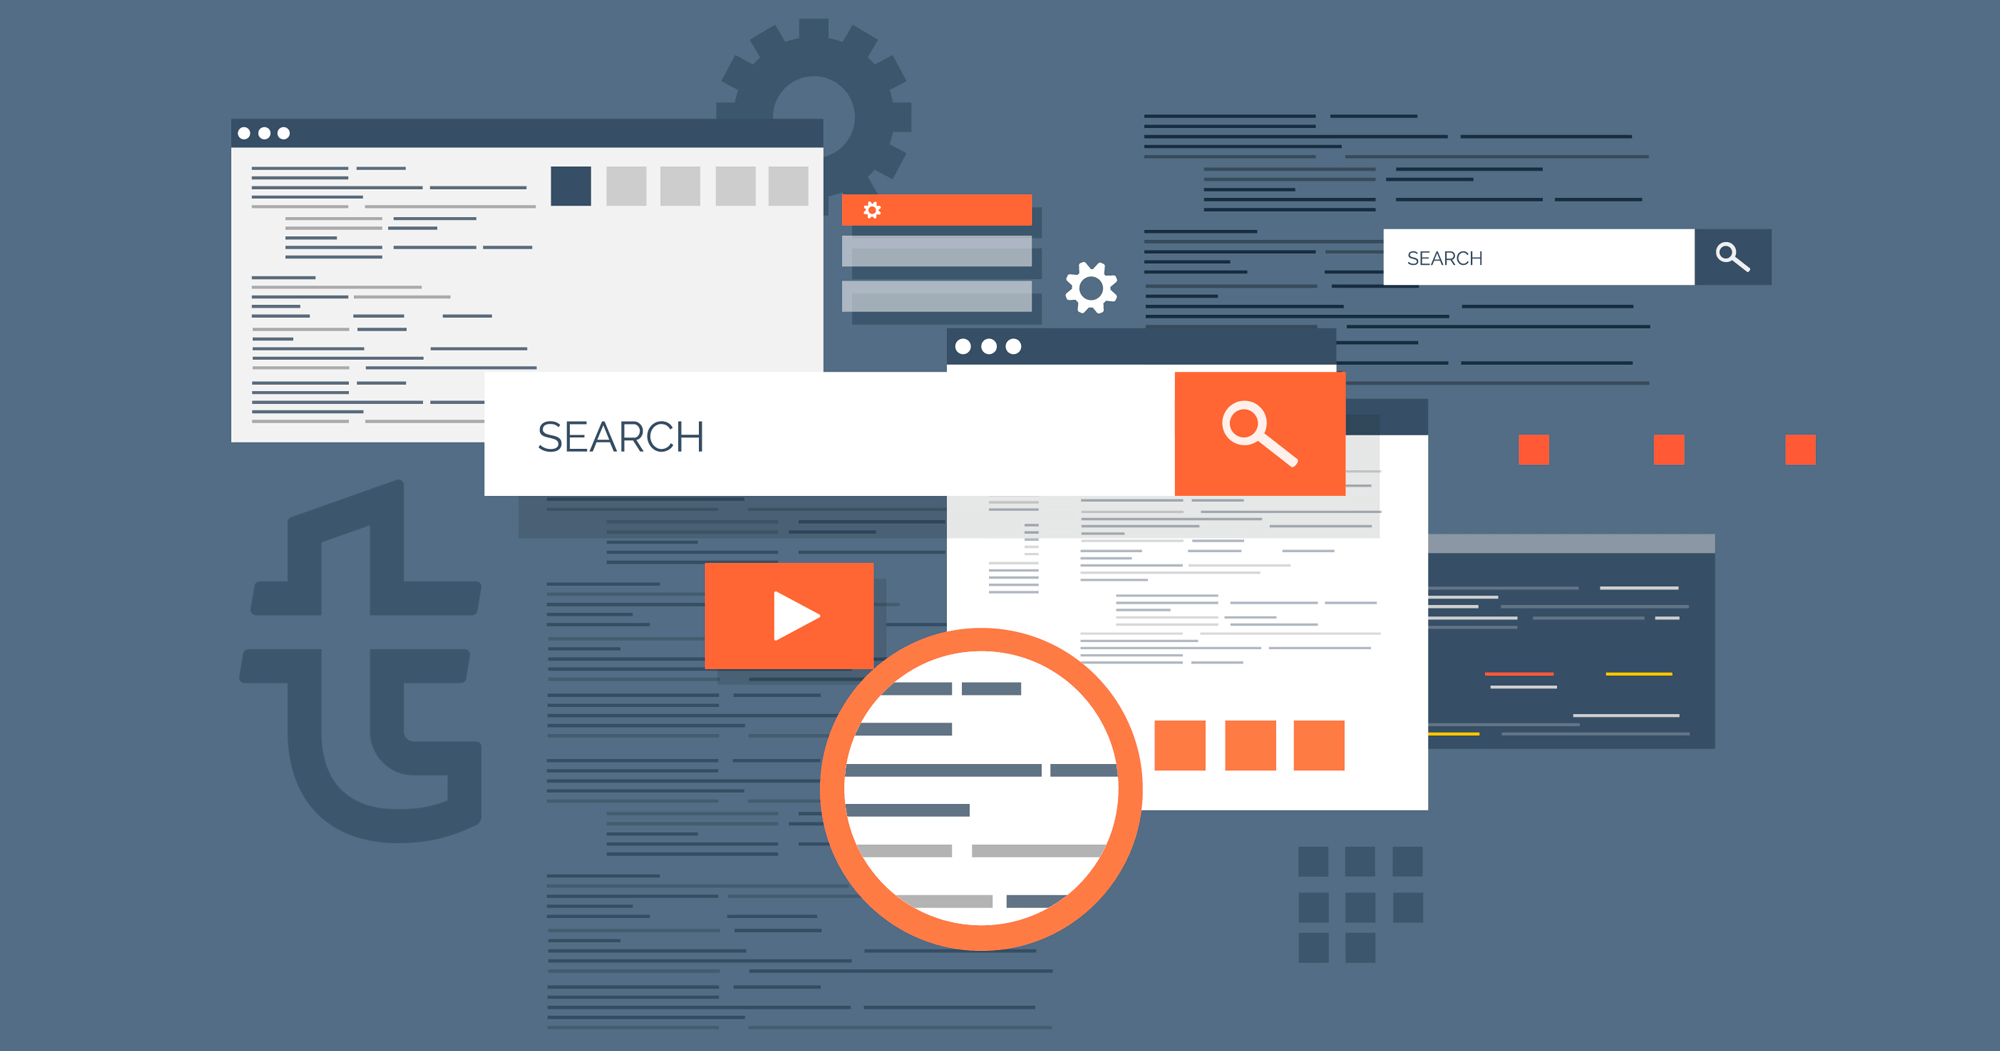 Step-by-step guide on how to build a travel search engine website